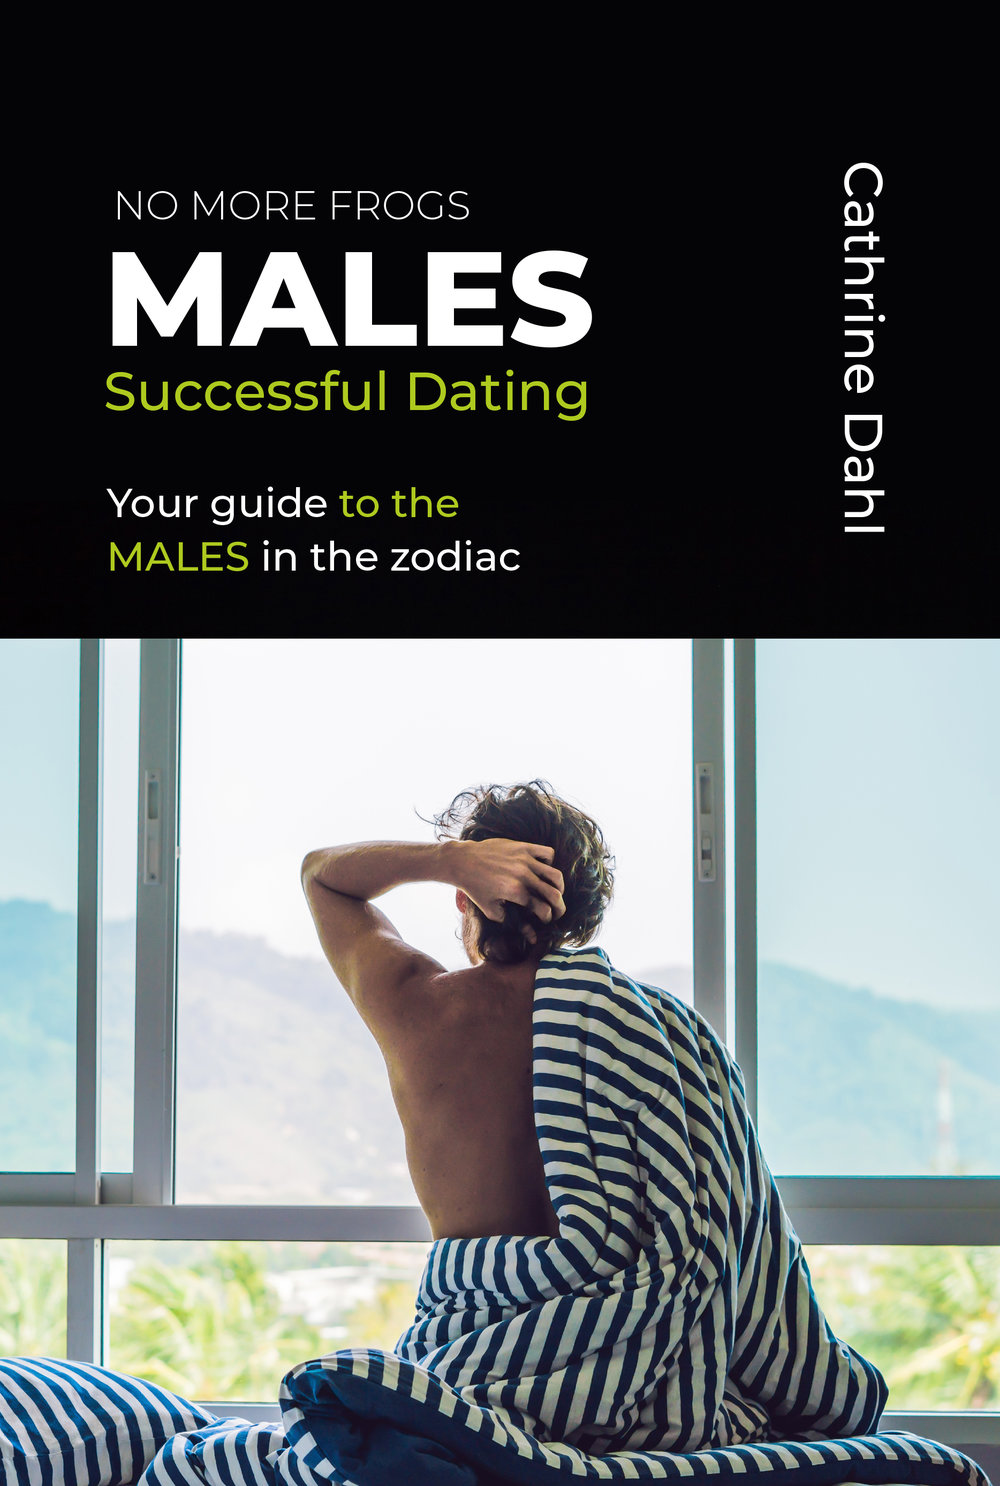 Your guide toThe Males - Silent and mysterious or outgoing and energitic...? Explore the magical word of the male.